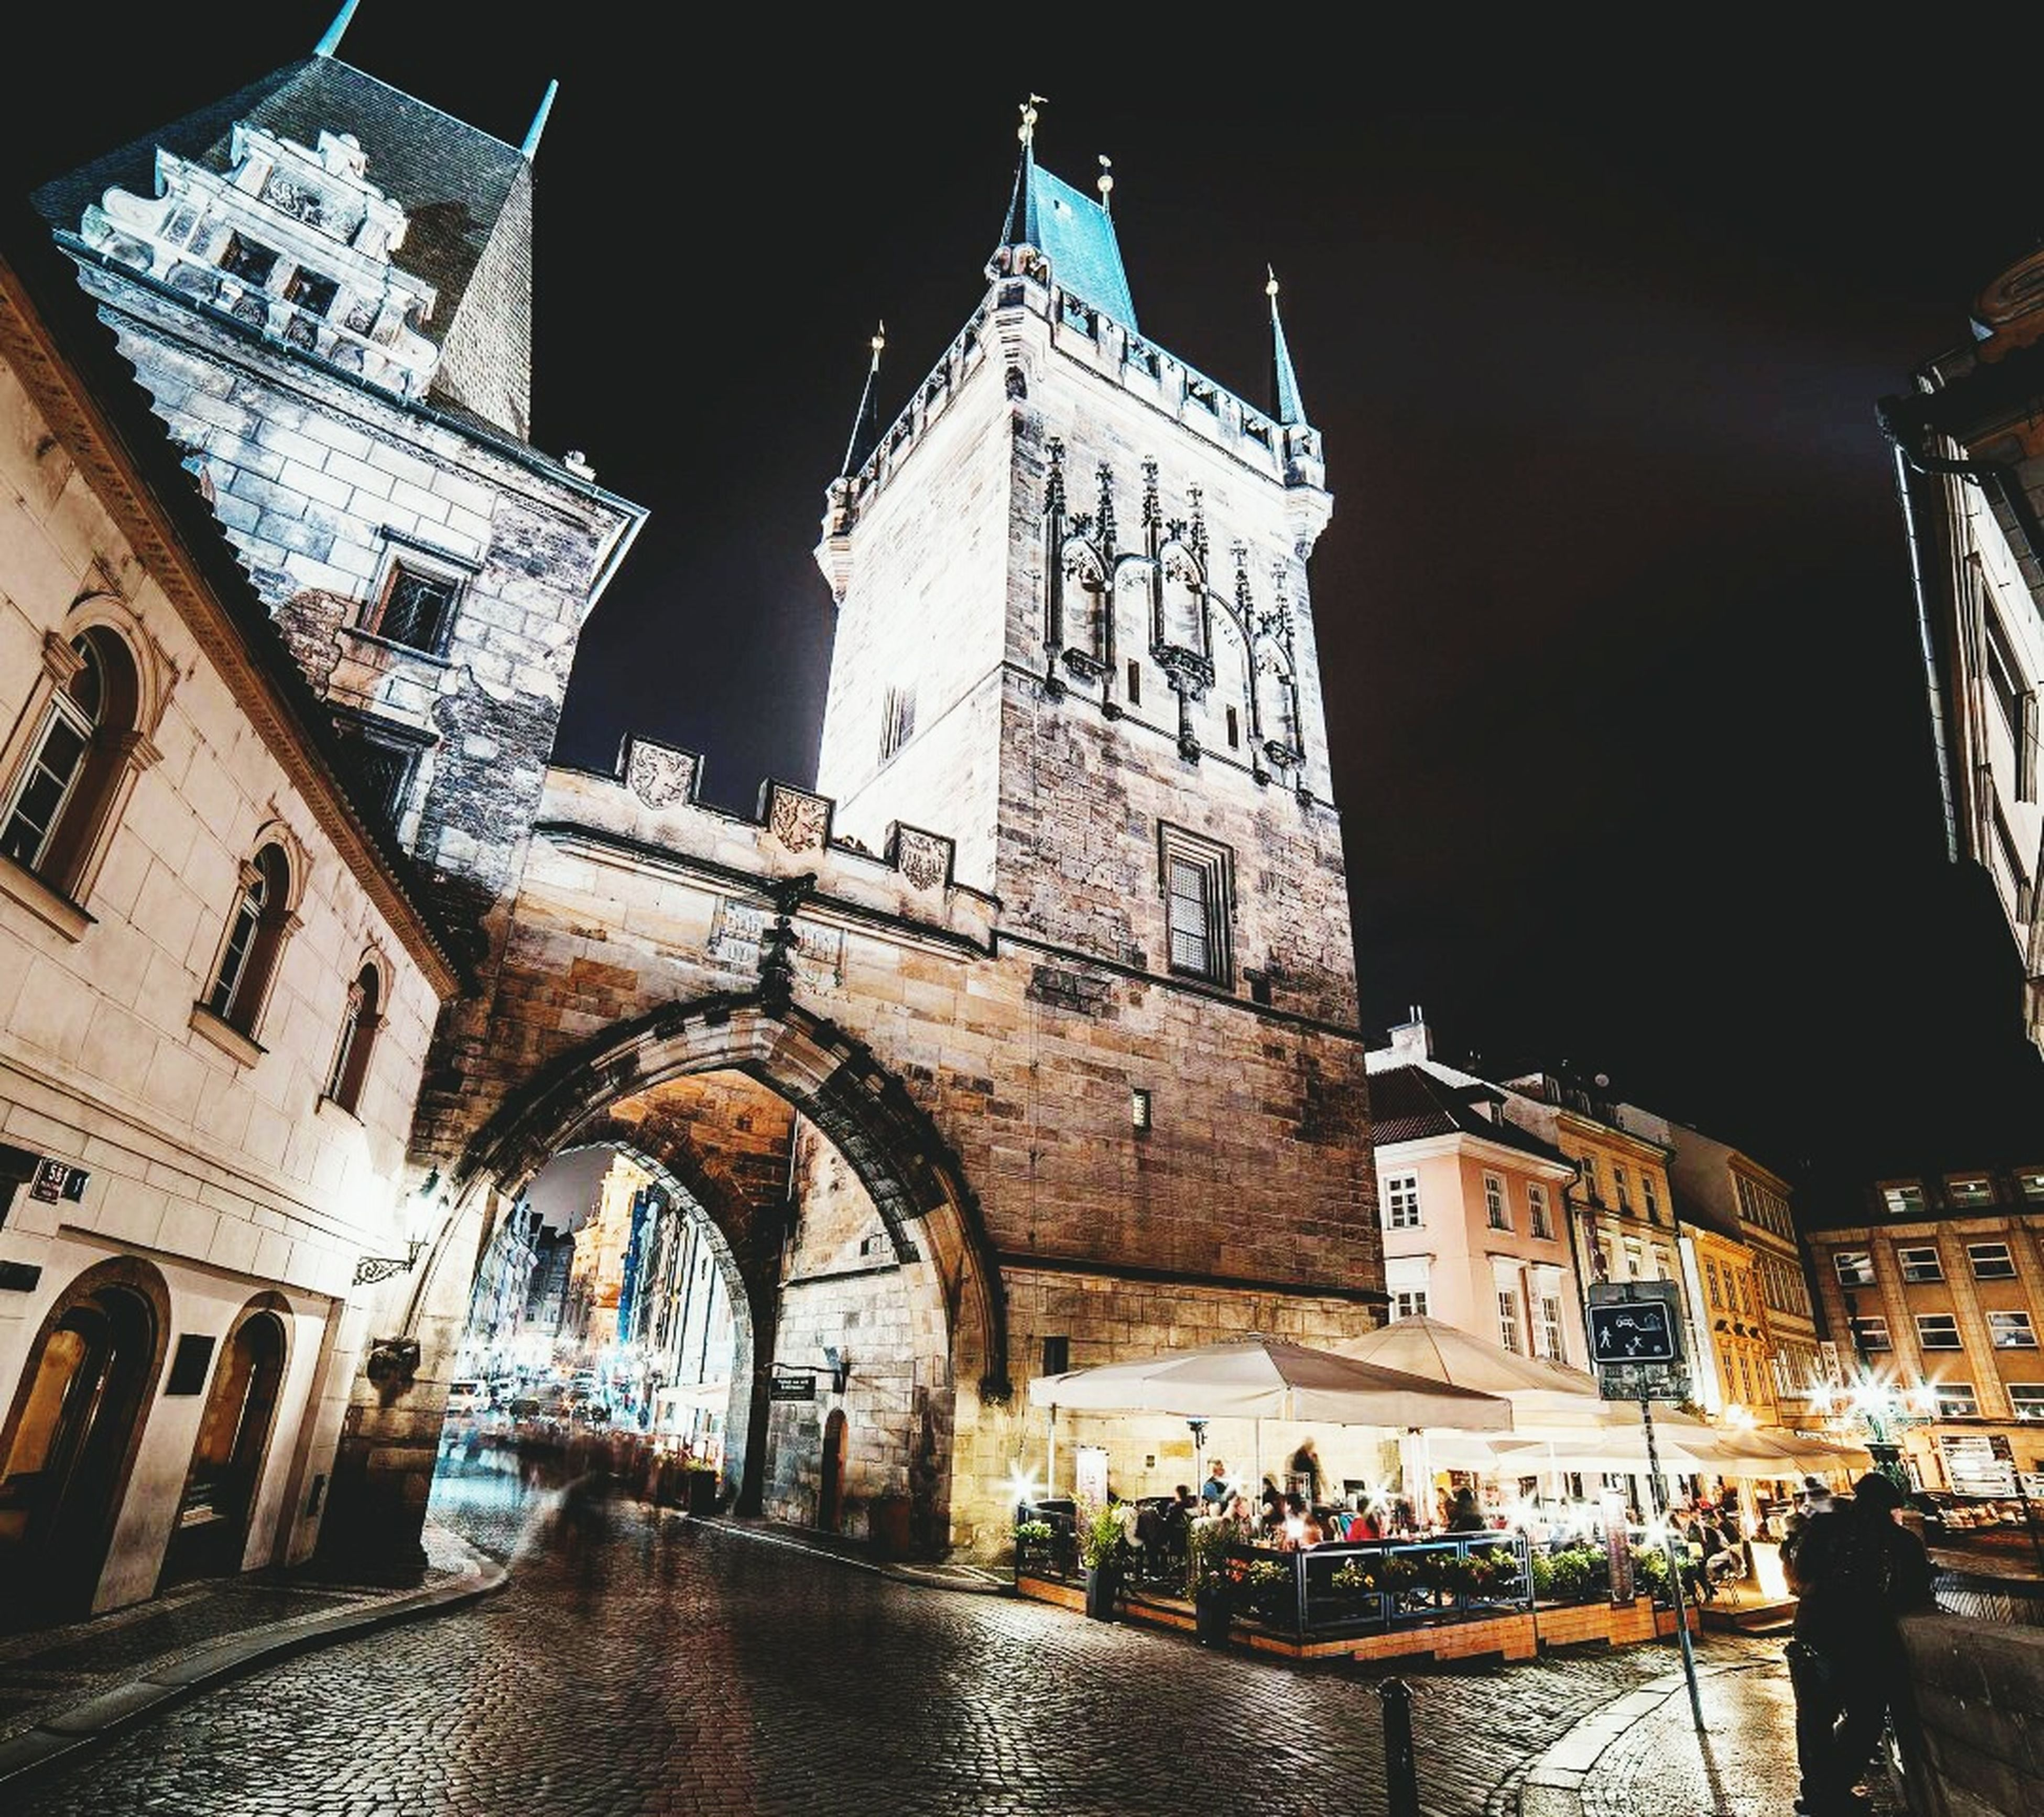 night, illuminated, travel destinations, architecture, building exterior, clock, city, outdoors, time, christmas, large group of people, clock tower, astronomical clock, christmas market, sky, people